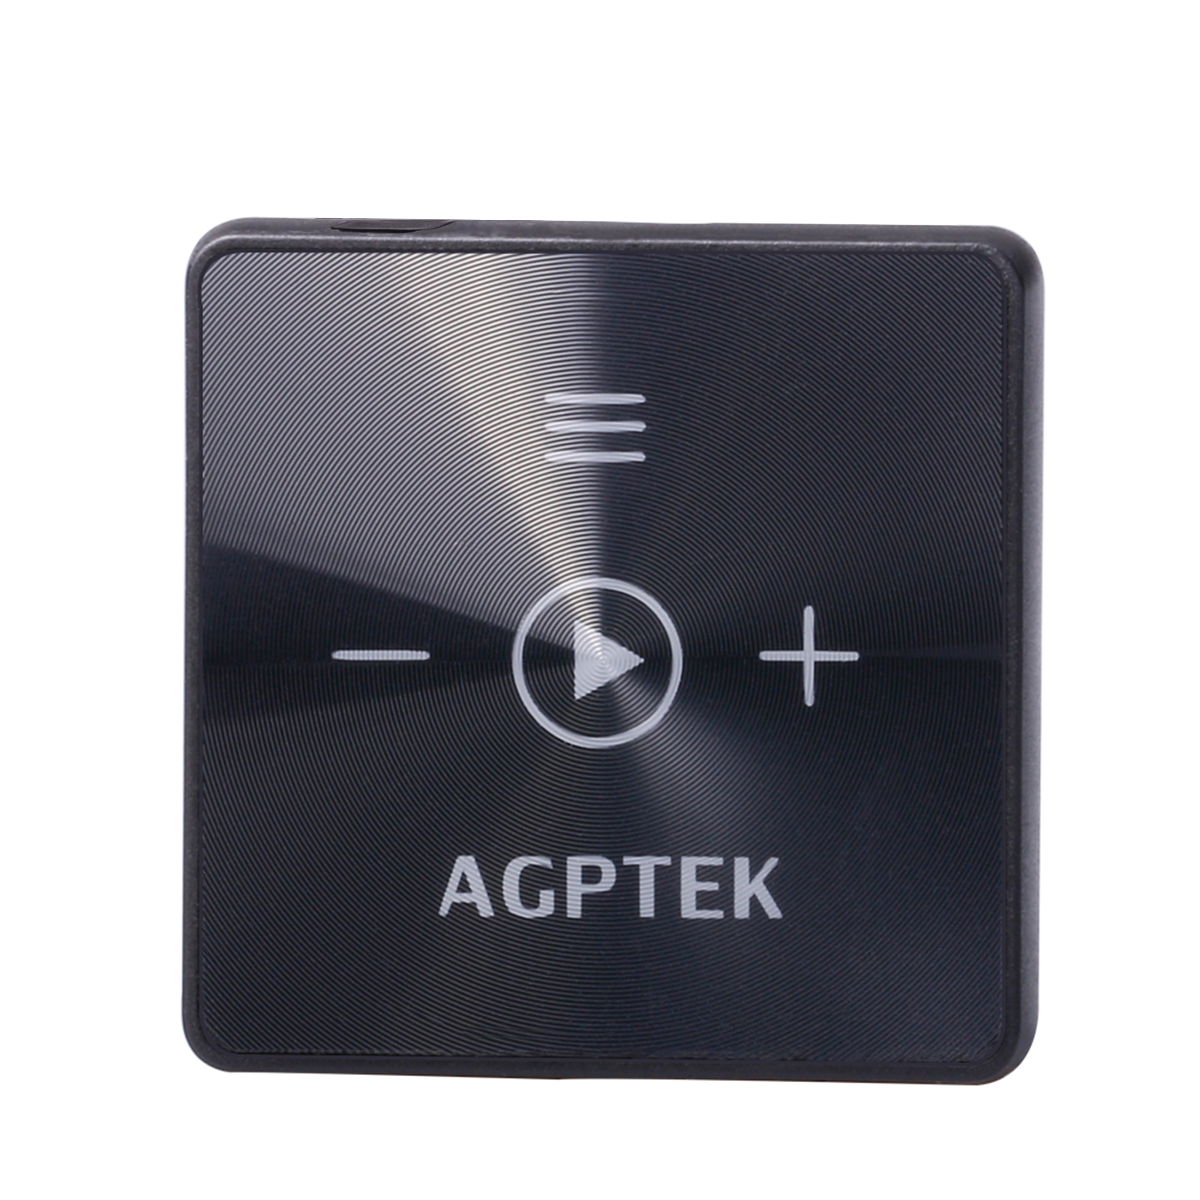 AGPtEK A15 WirelessBluetooth 4.2 Receiver with mini Clip for outdoor sports, HIFI Music Player with 8GB memory, Black